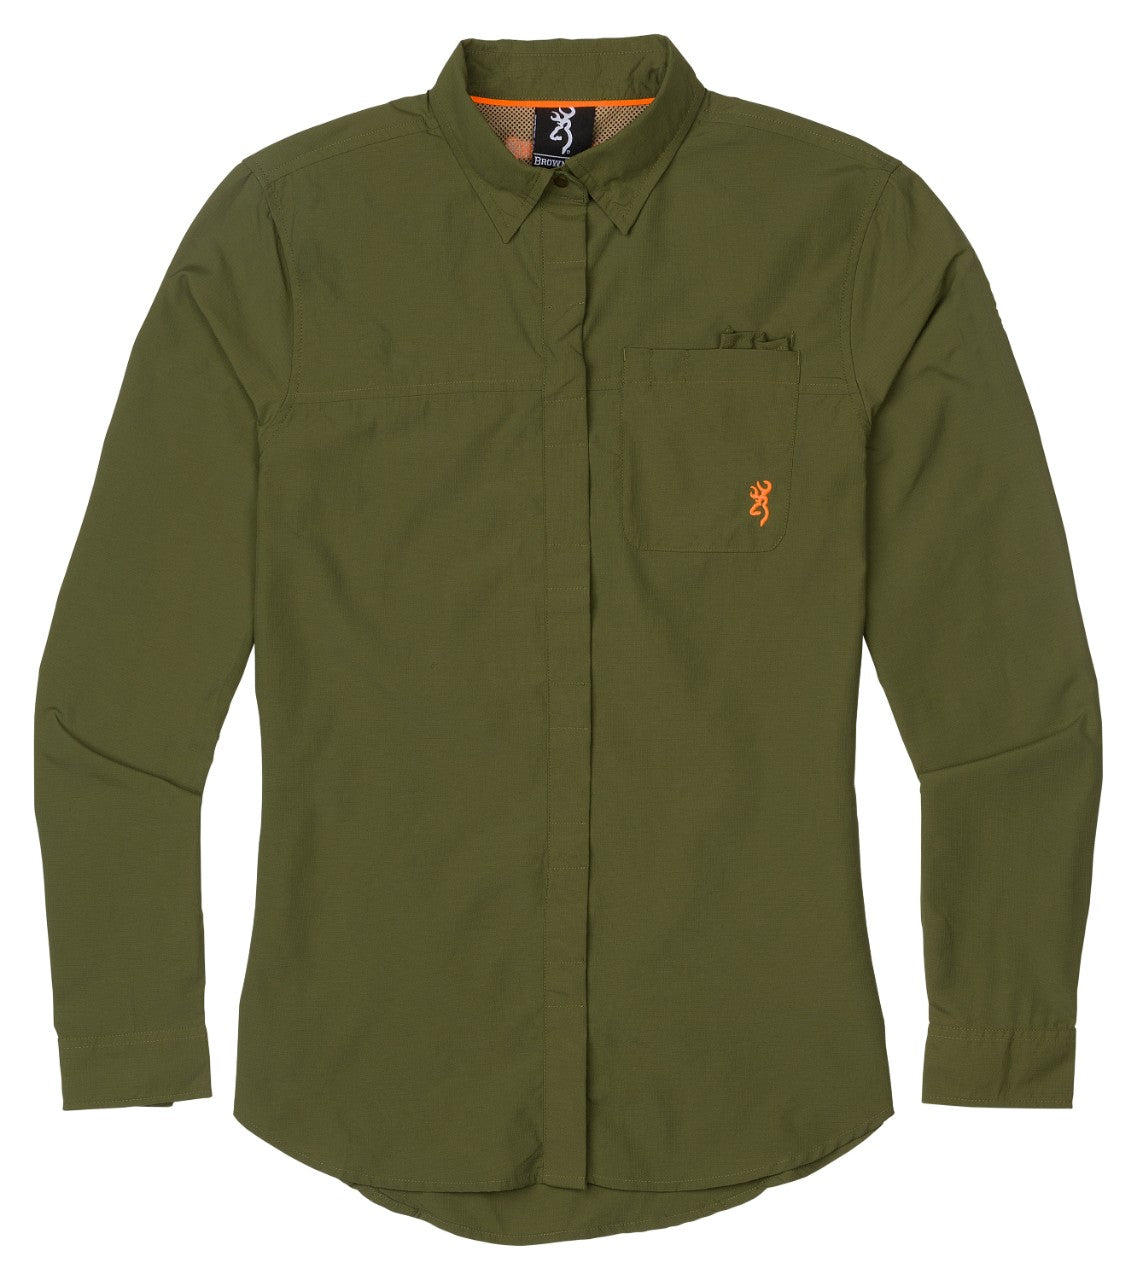 Women's Upland Lightweight Shirt